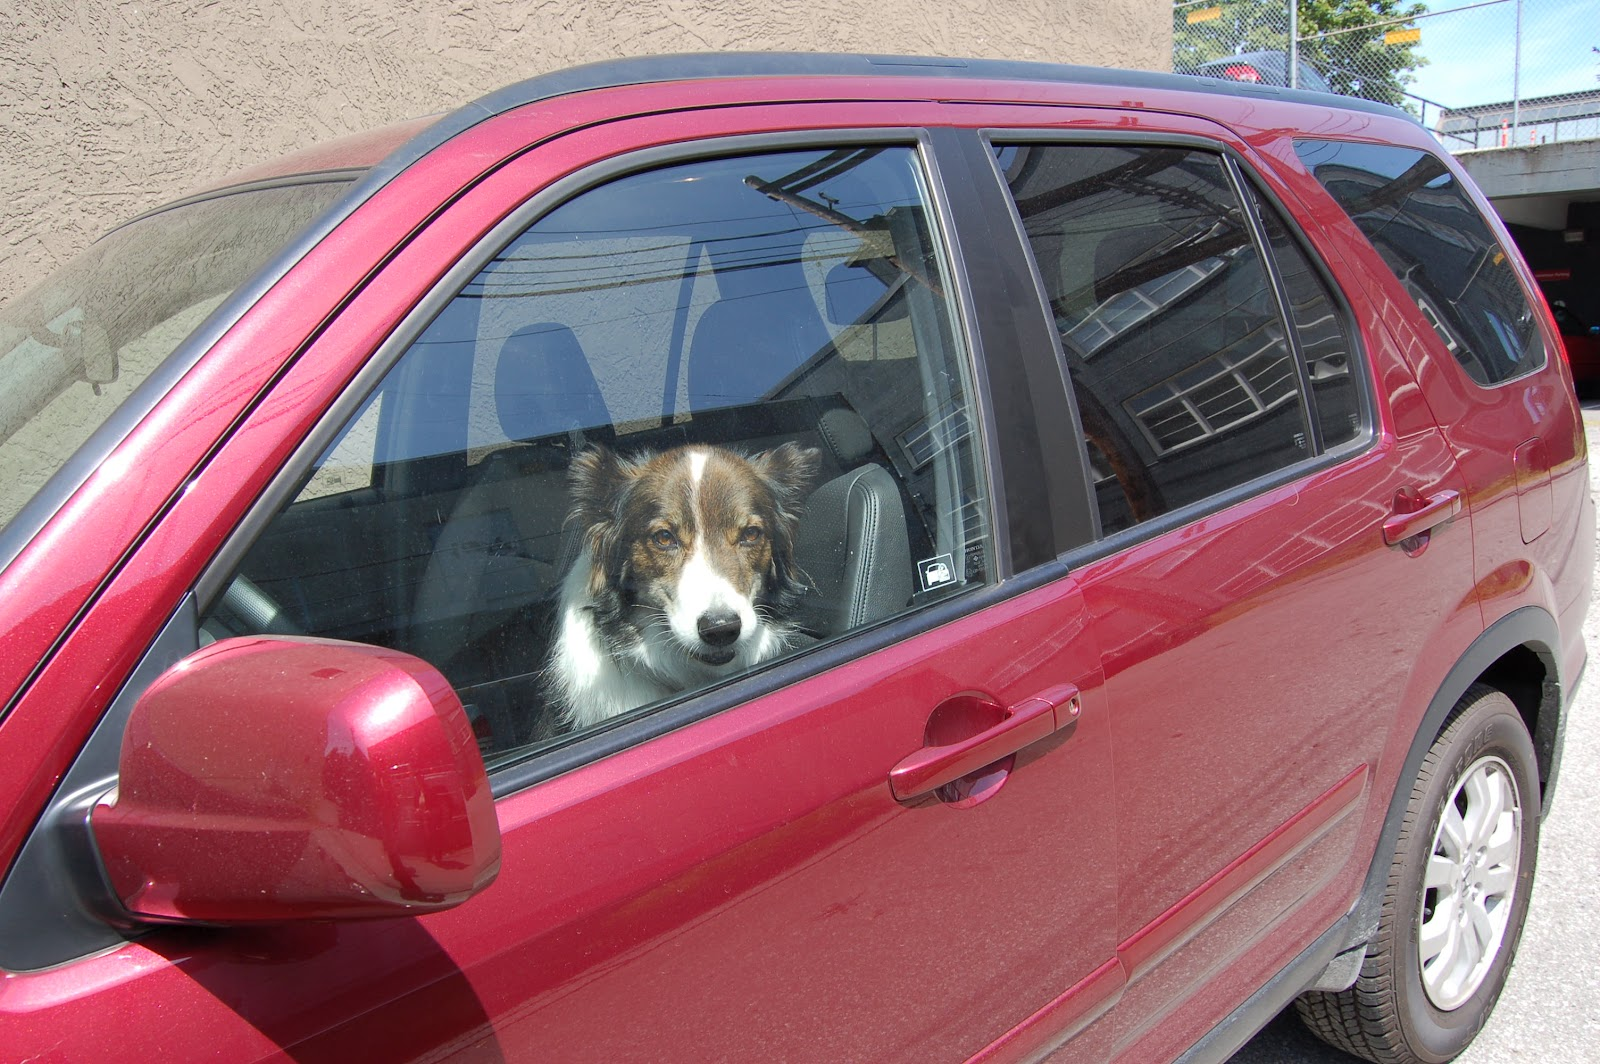 Live in California? You can now legally break into a car to save a trapped animal